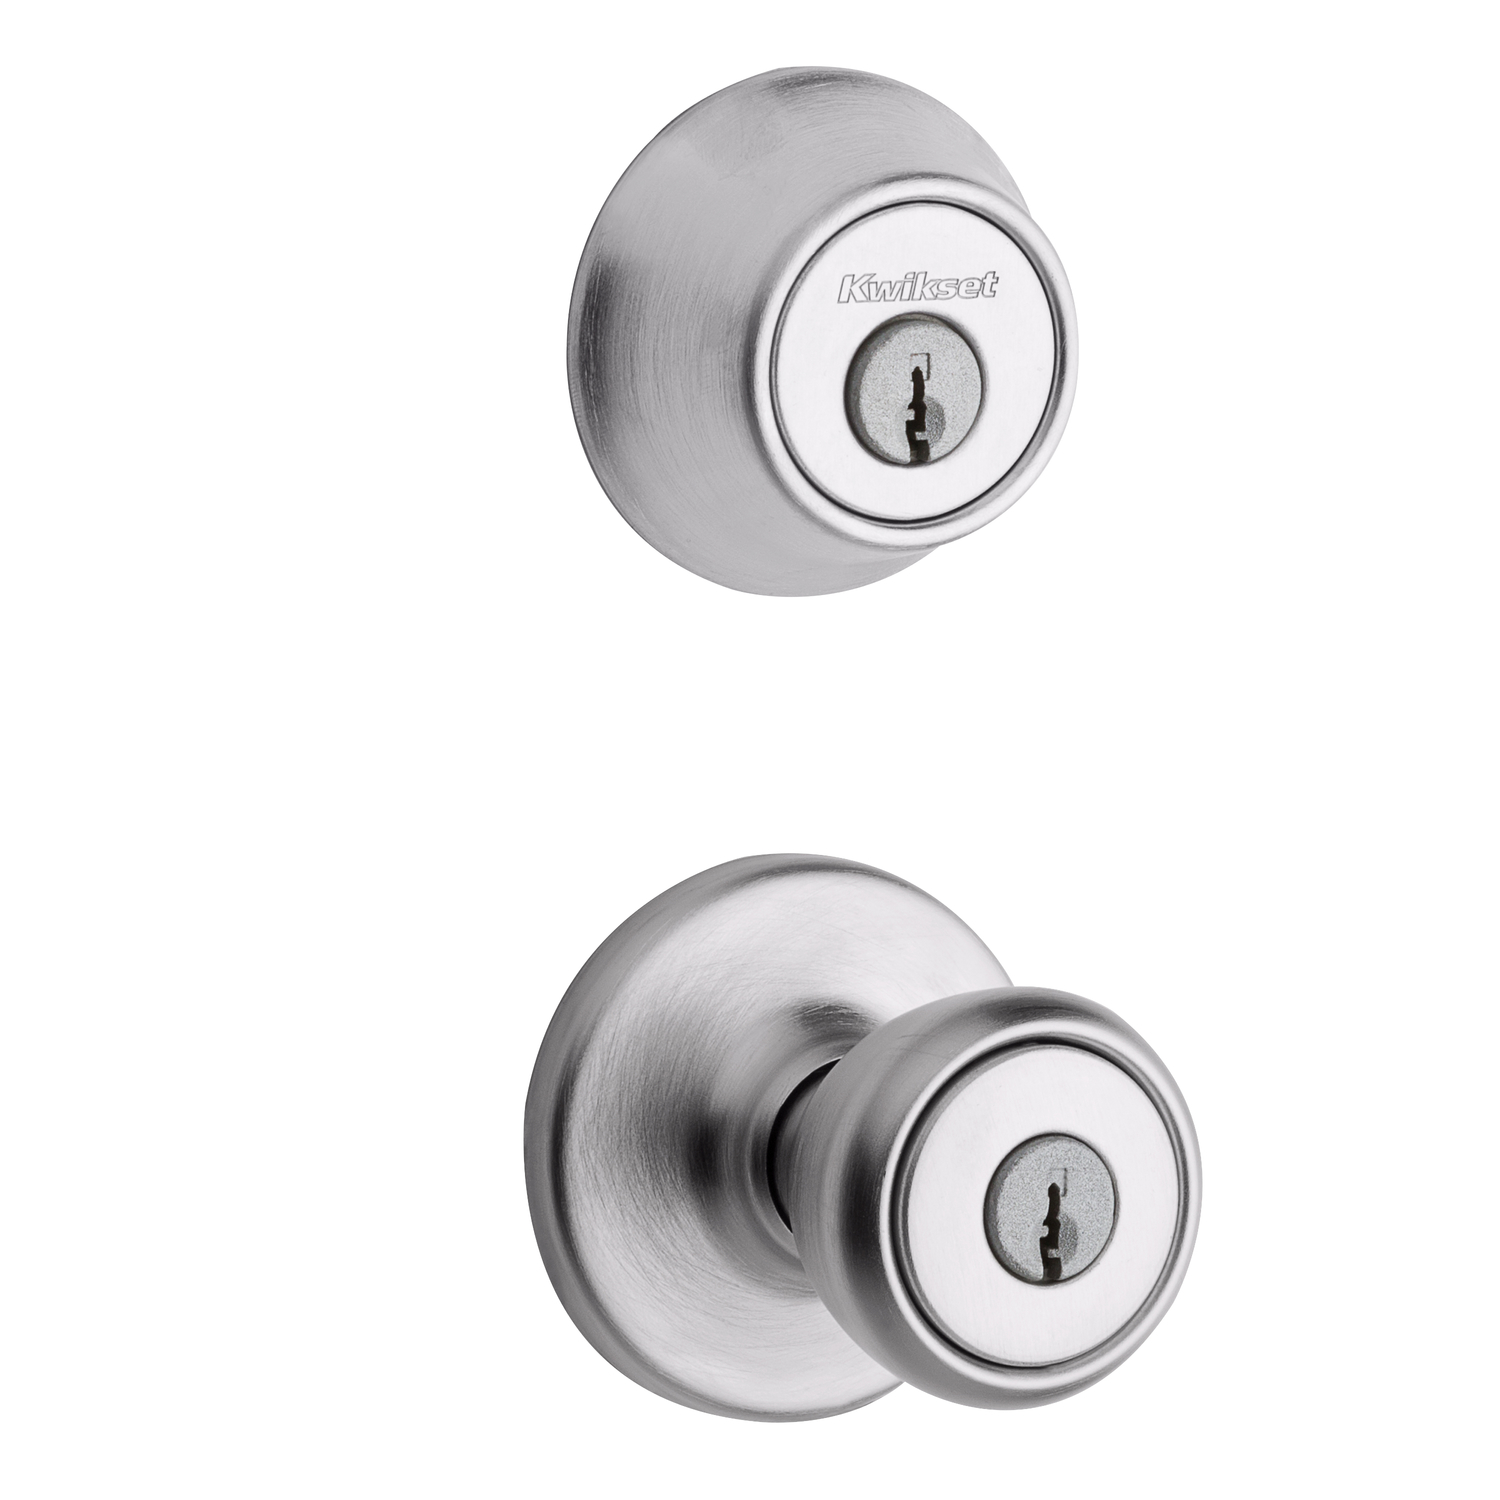 Kwikset  Tylo  Satin Chrome  Steel  Entry Lockset  ANSI/BHMA Grade 3  1-3/4 in.